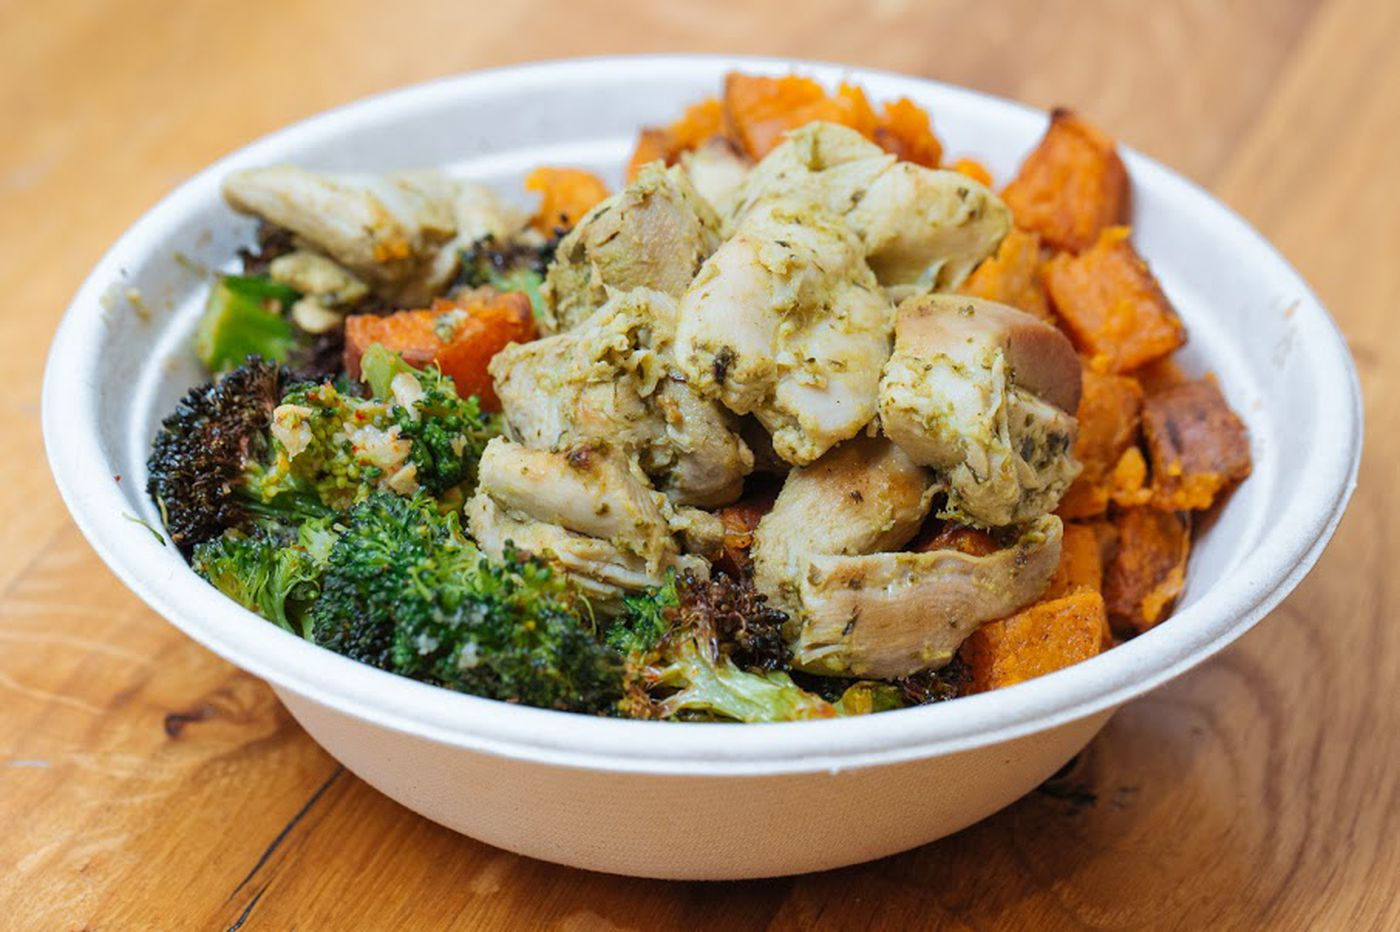 Real Food Eatery opens on City Avenue